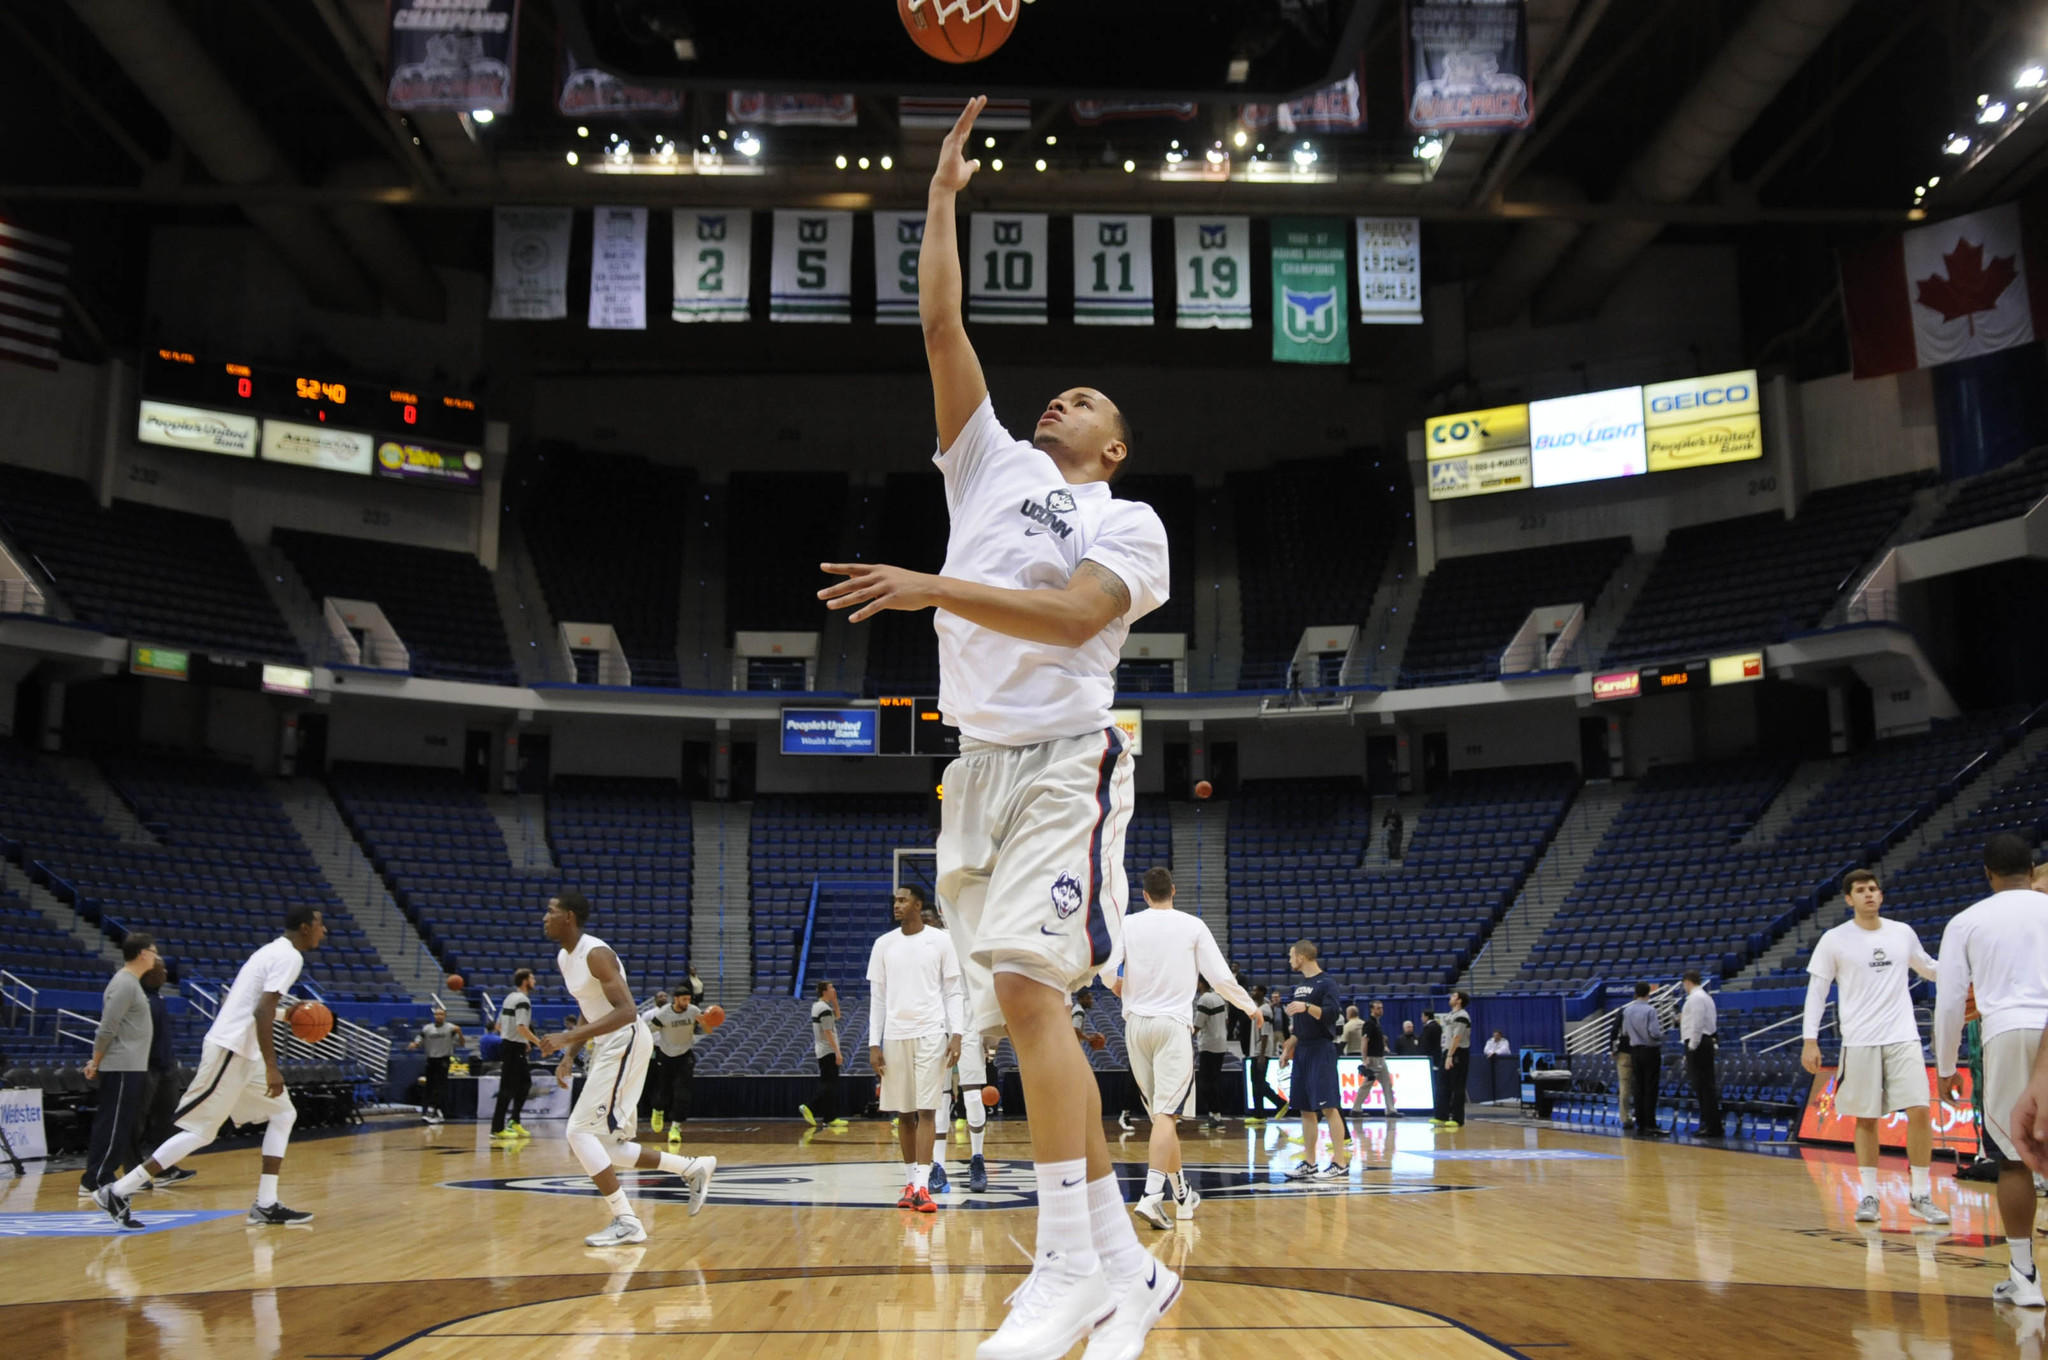 Guard Shabazz Napier warms up before a game in November at the XL Center. About $35 million in state-funded upgrades are underway at the XL Center and expected to be largely completed by October.